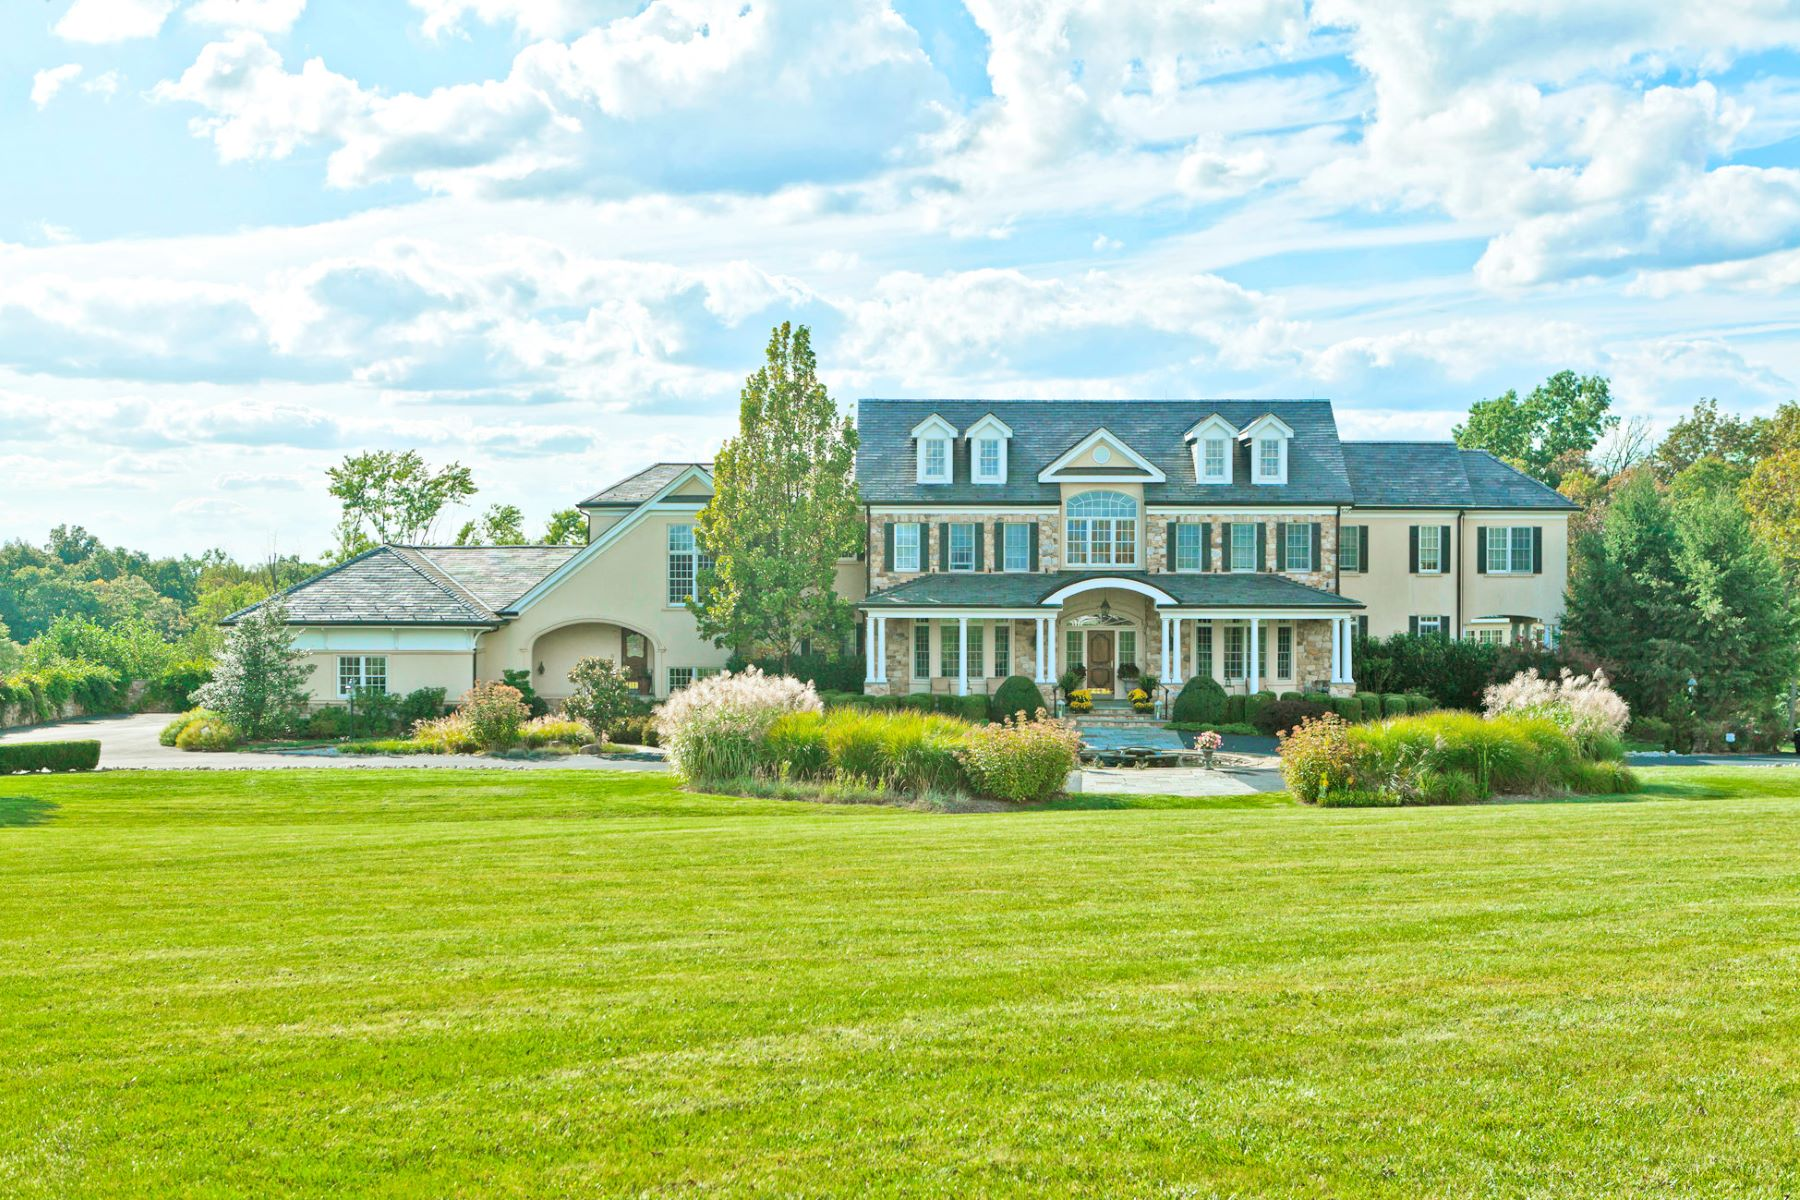 single family homes vì Bán tại The Ultimate Wall Street Getaway 131 - 133 Harbourton Woodsville Road Hopewell Township, Lambertville, New Jersey 08530 Hoa Kỳ